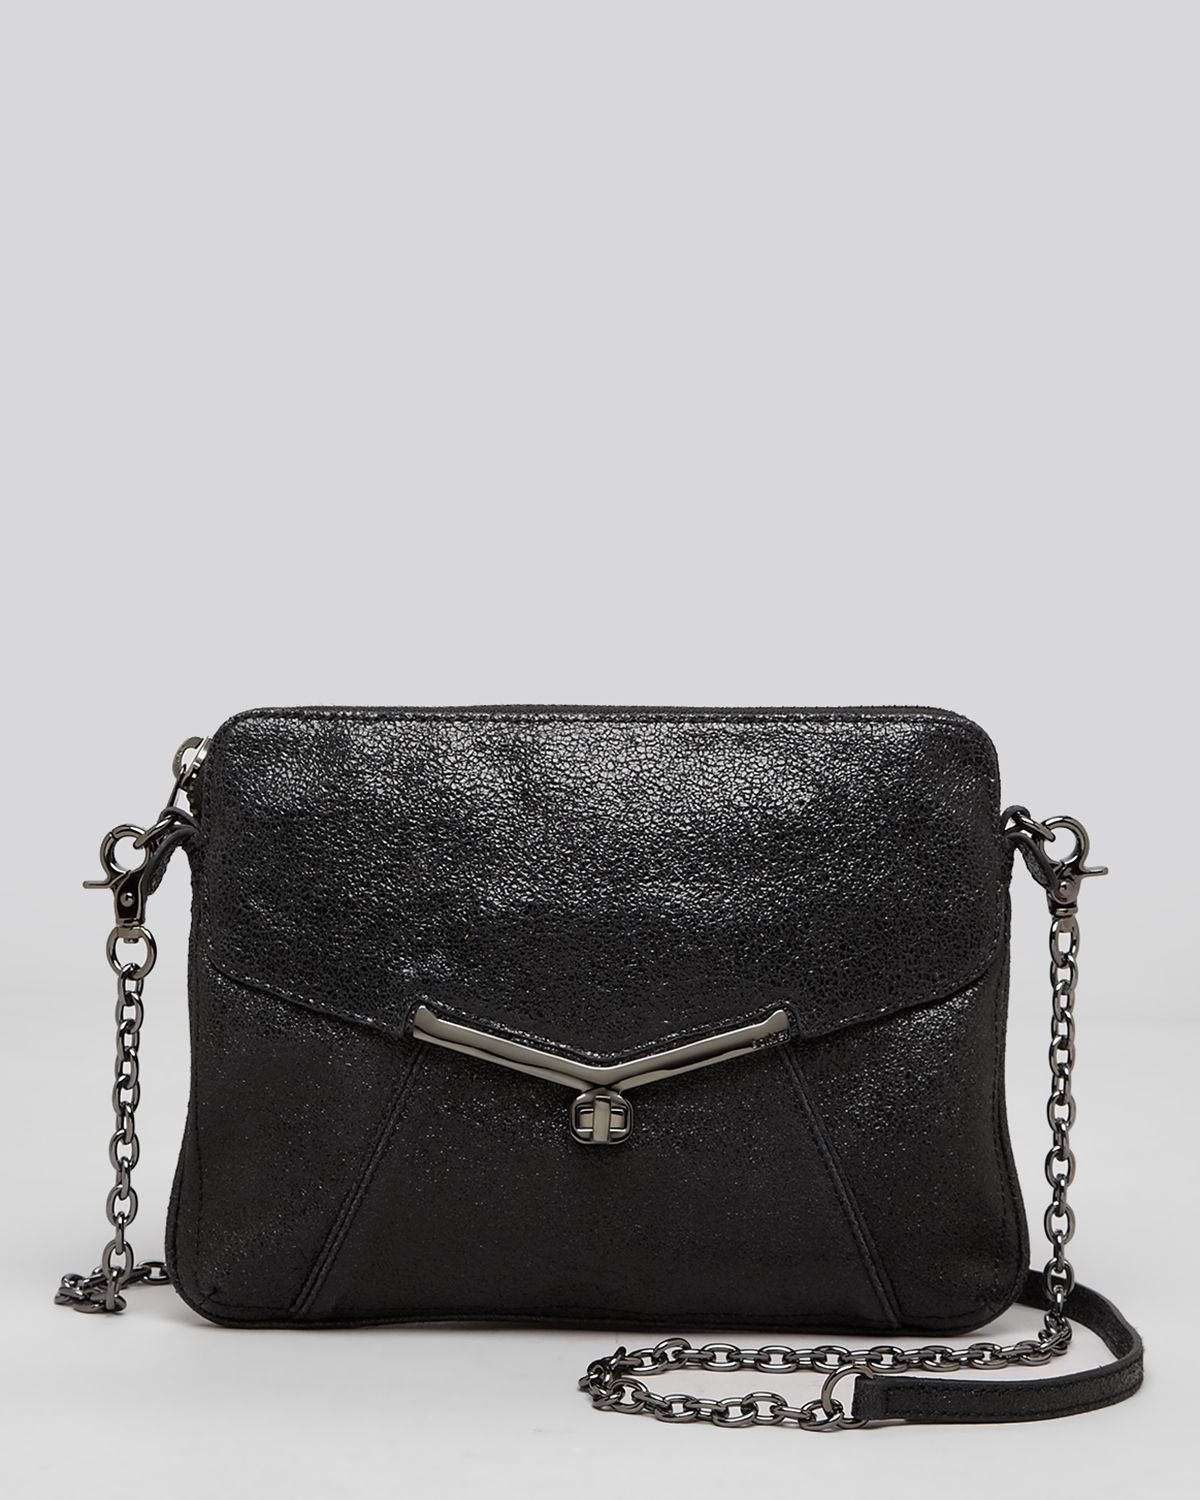 Botkier Crossbody - Valentina Mini Convertible | Bloomingdale's